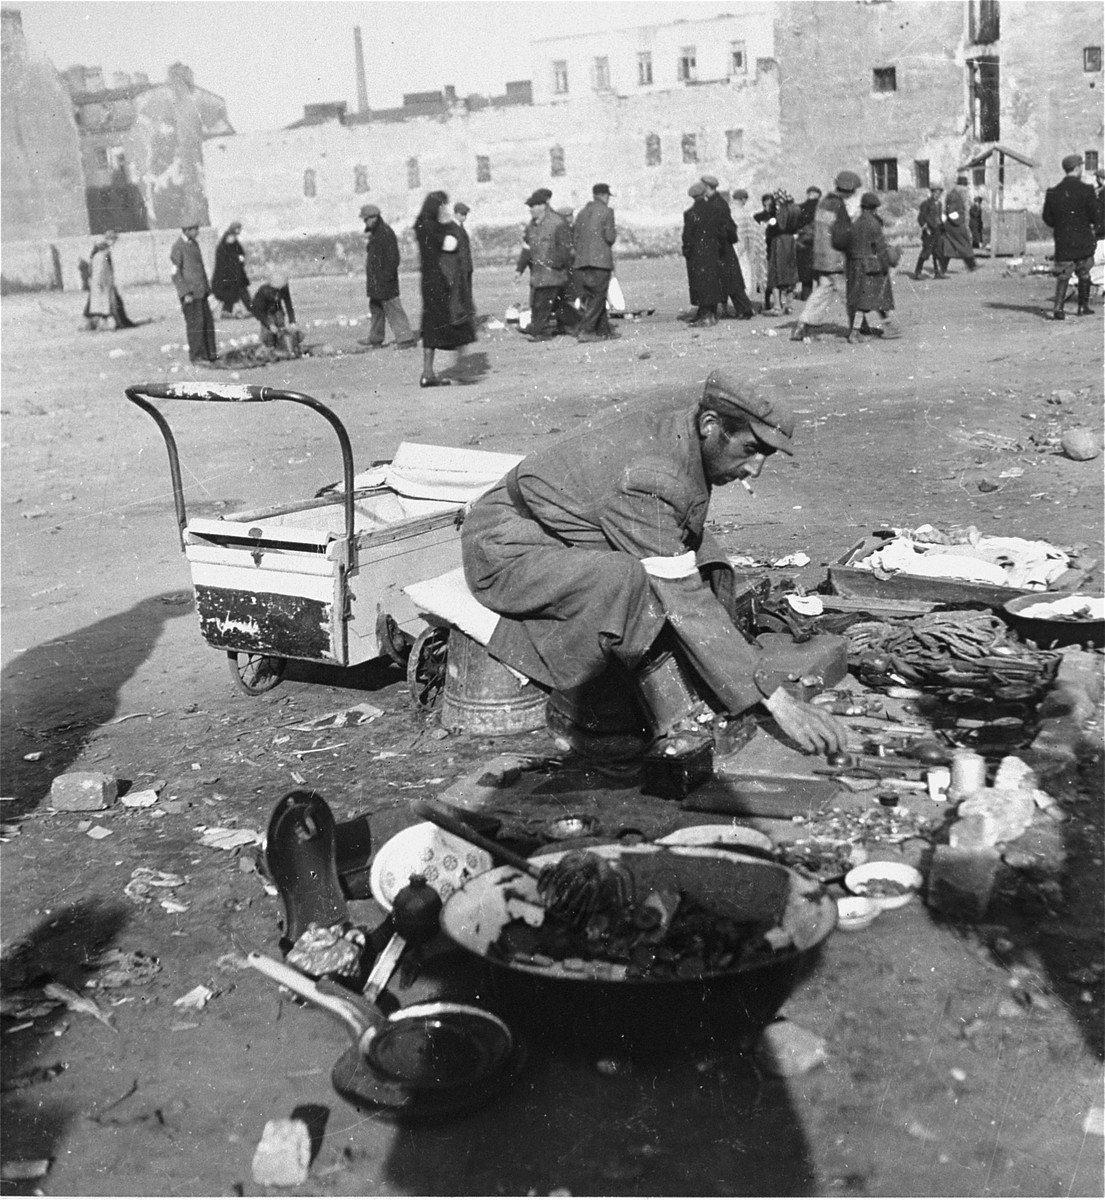 """A man offers various items for sale on a lot in the Warsaw ghetto.   Joest's original caption reads: """"This man offered [for sale] nothing anyone could need: old pans, heavy, dented bowls, an old cauldron.  However, he had to try any way he could to make money to live."""""""